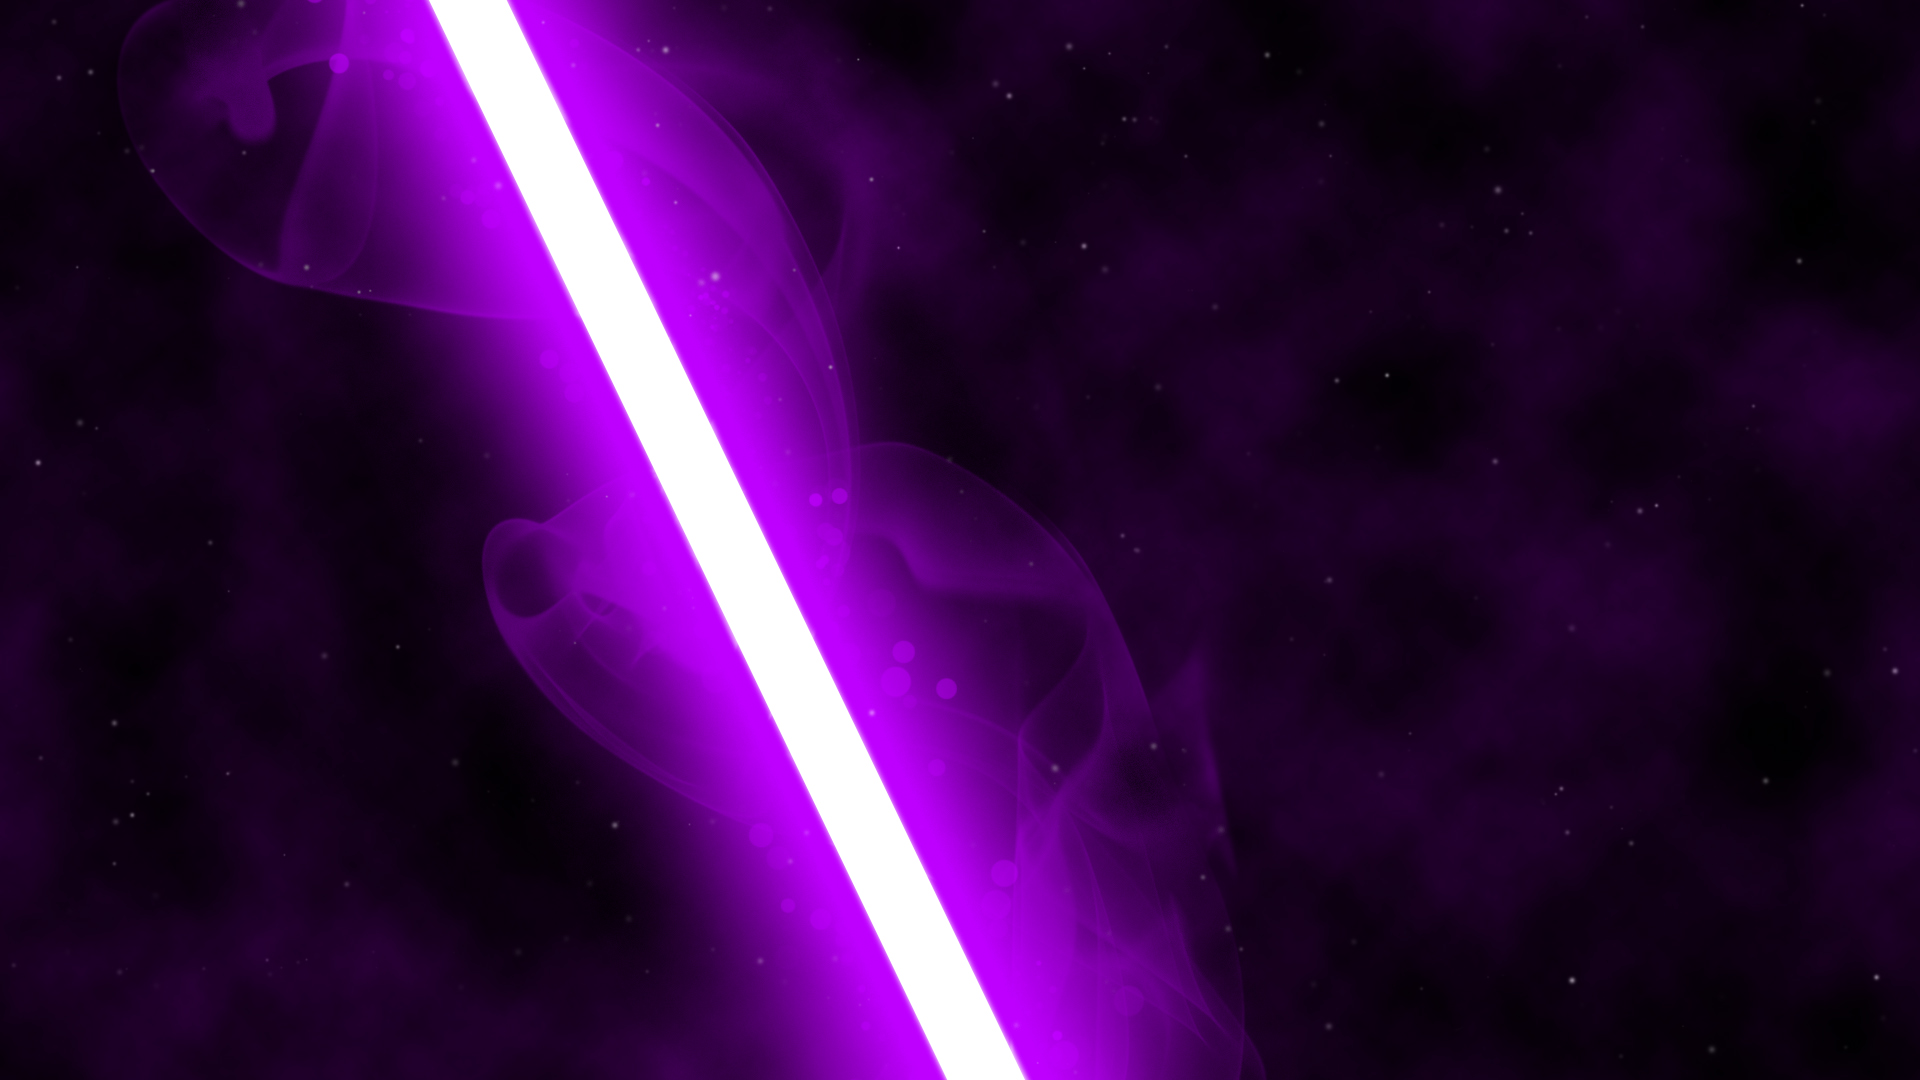 48 Purple Lightsaber Wallpaper On Wallpapersafari